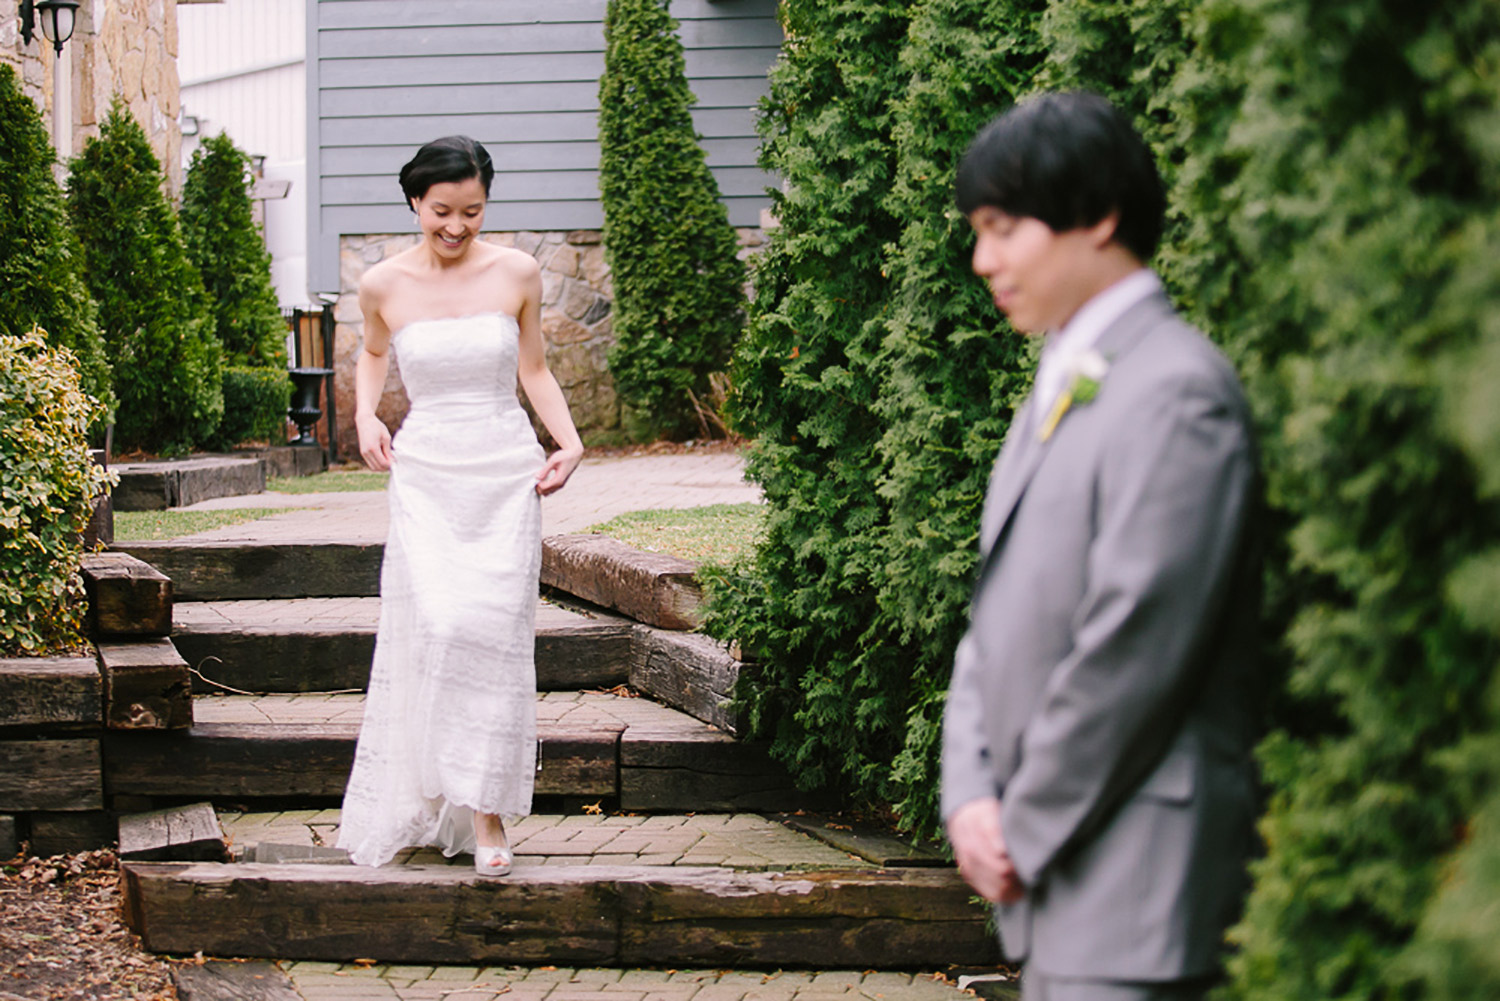 Vineland-Estates-Wedding-Vineyard-Bride-Photo-By-Tamara-Lockwood-Photography-003.jpg